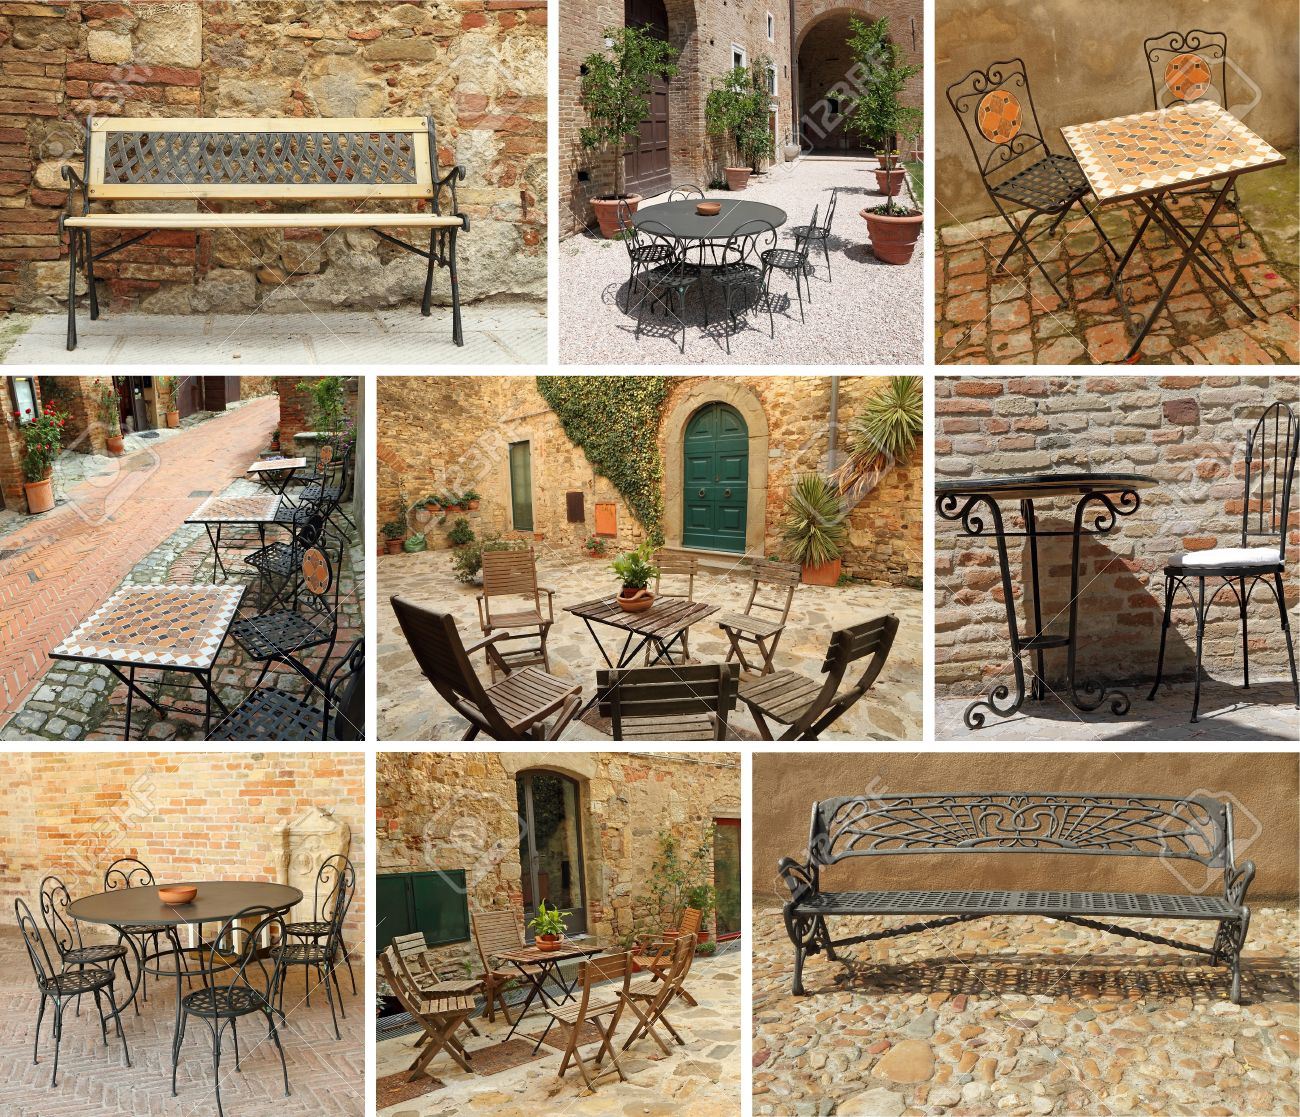 Garden Furniture Vintage vintage garden furniture collage, italy, europe stock photo